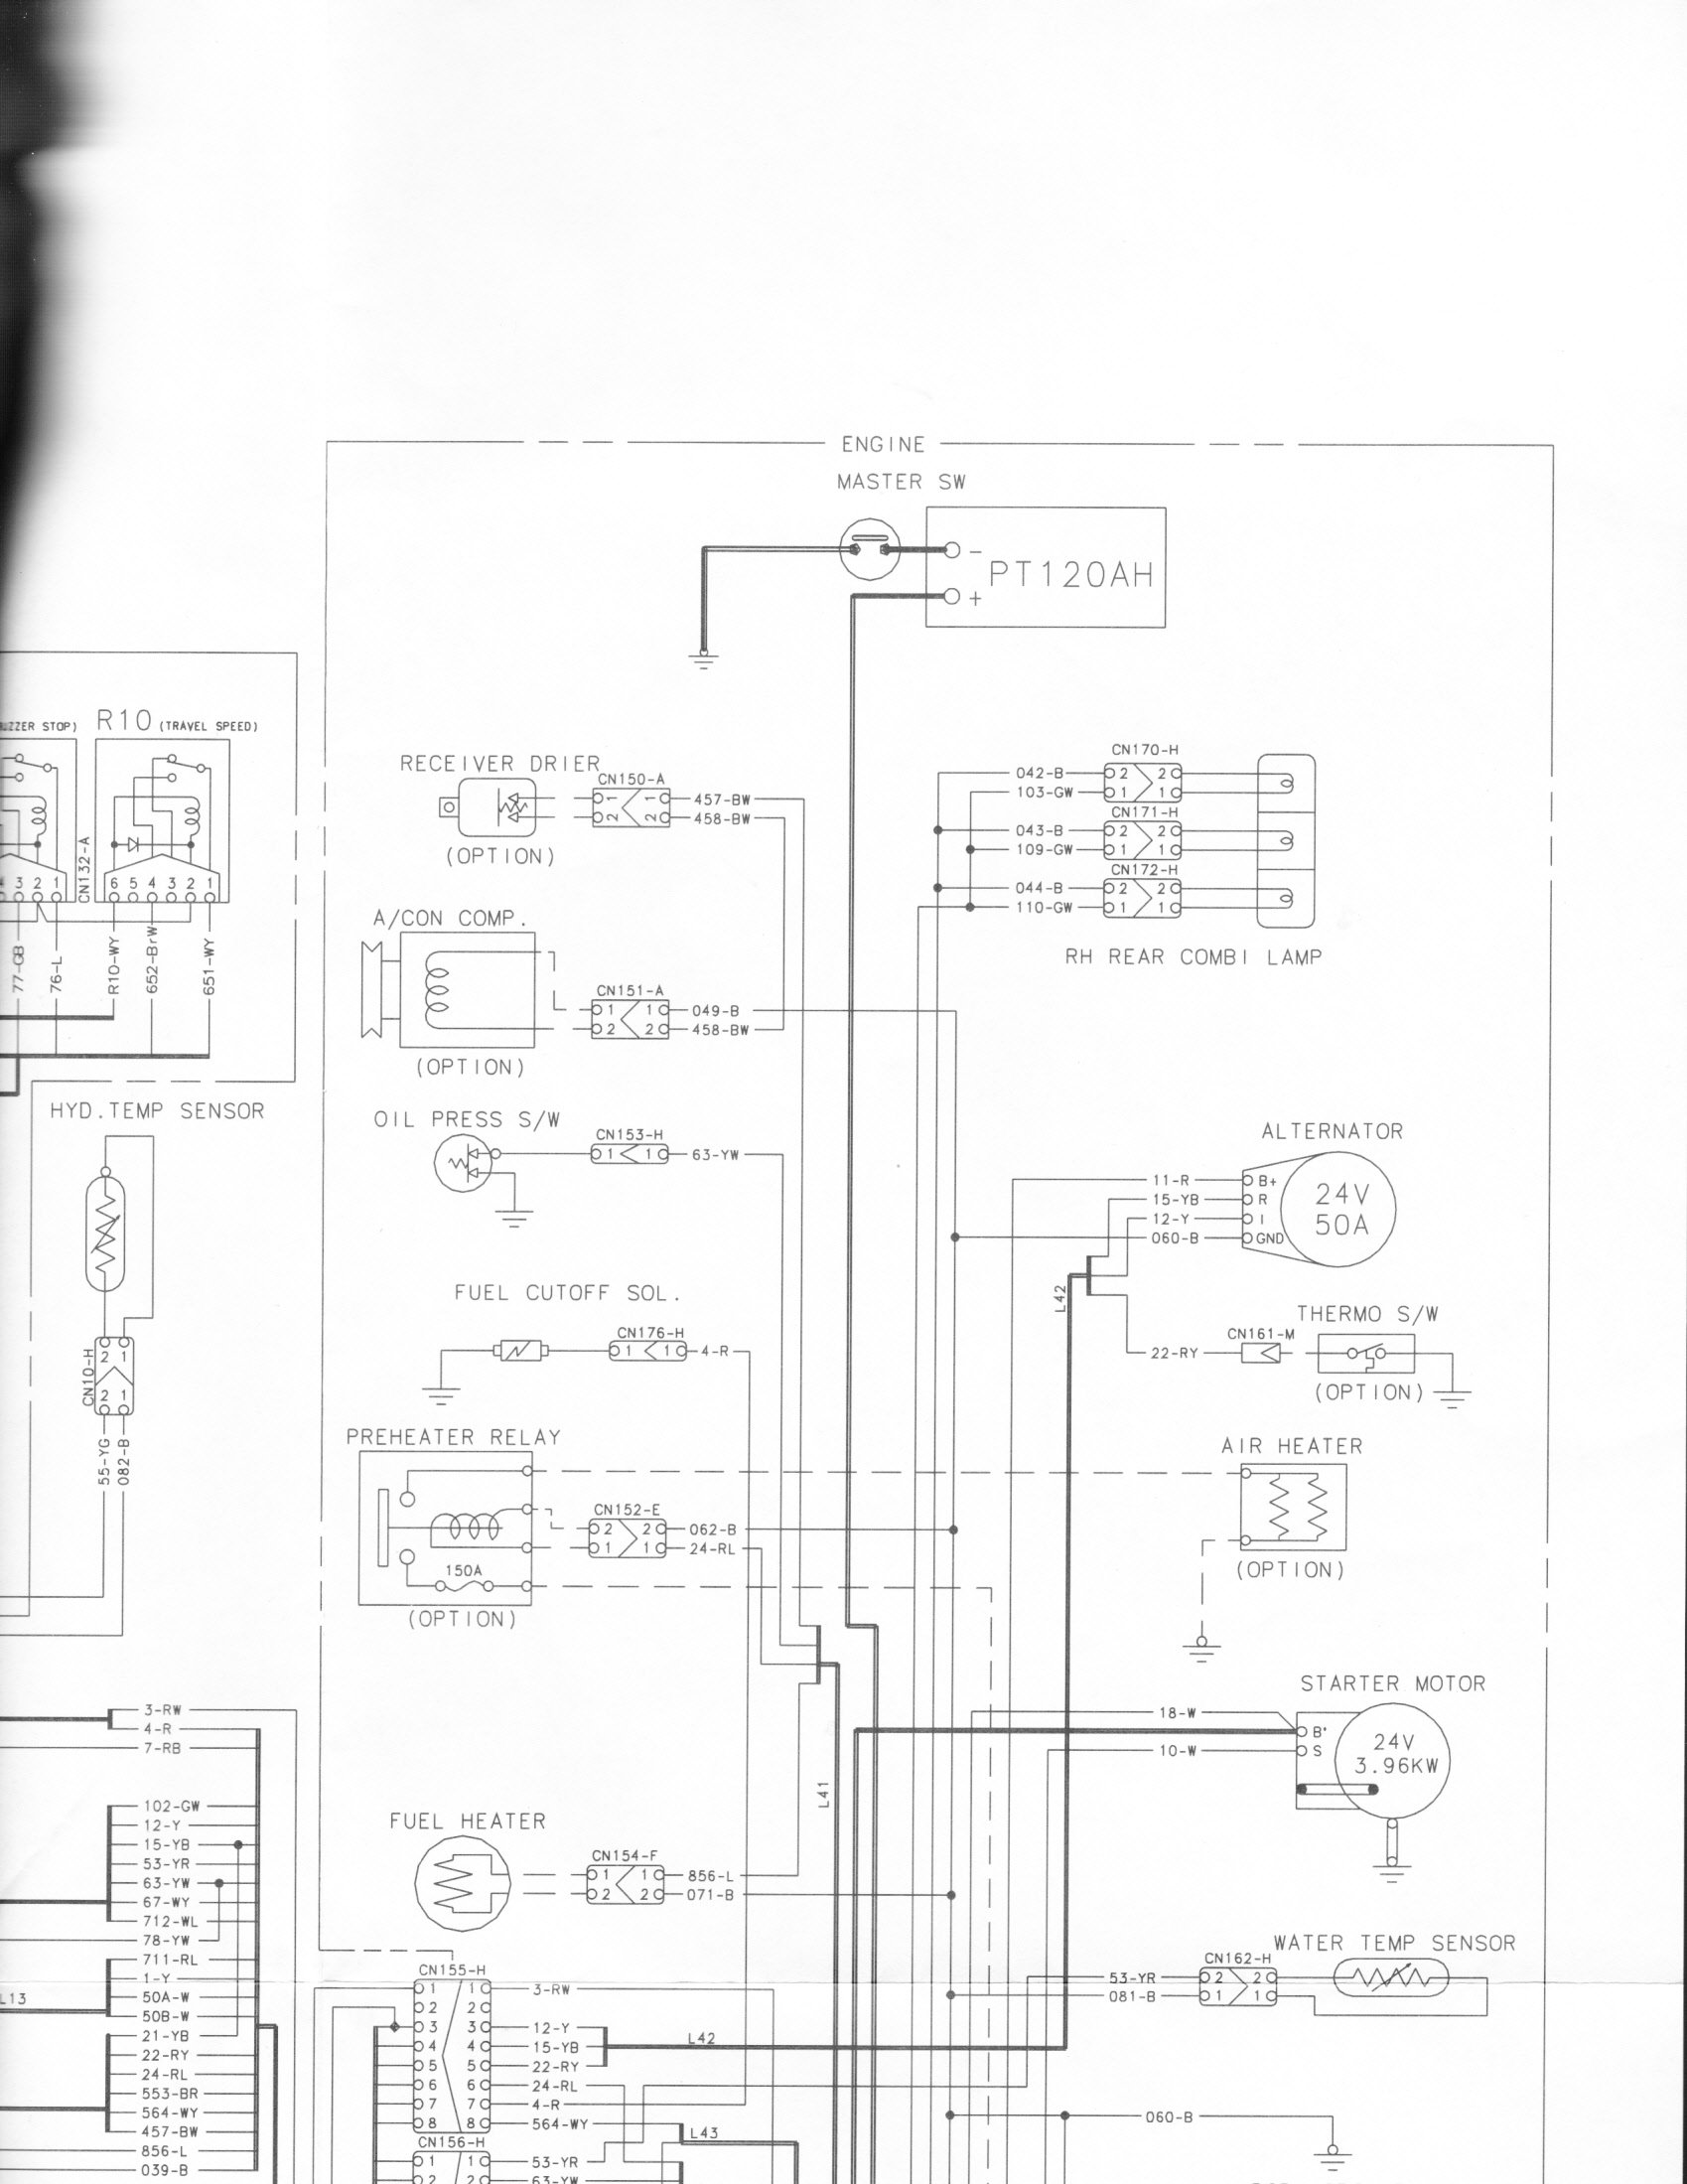 Looking For Mech With Experience 1995 Samsung Se130lcm 2 Case Excavator Wiring Diagrams Hello I Do Have A Good Schematic It Is Just Extra Large Scanned In Sections To See If You Can Piece Together At Site